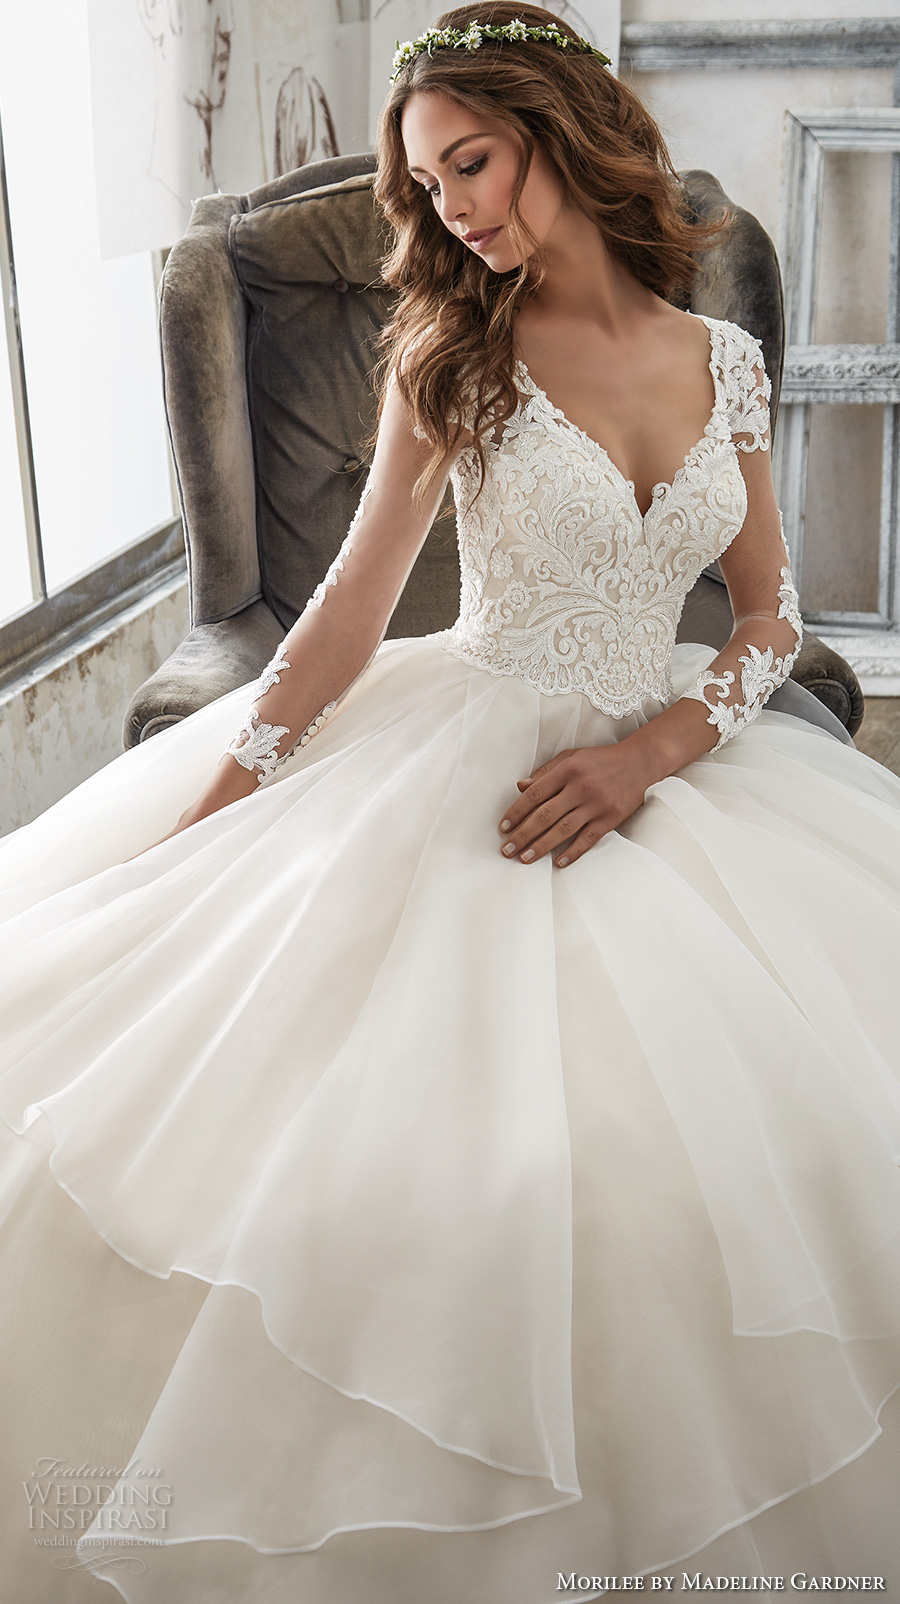 Morilee by madeline gardner spring 2017 wedding dresses for Wedding dresses with sleeves 2017